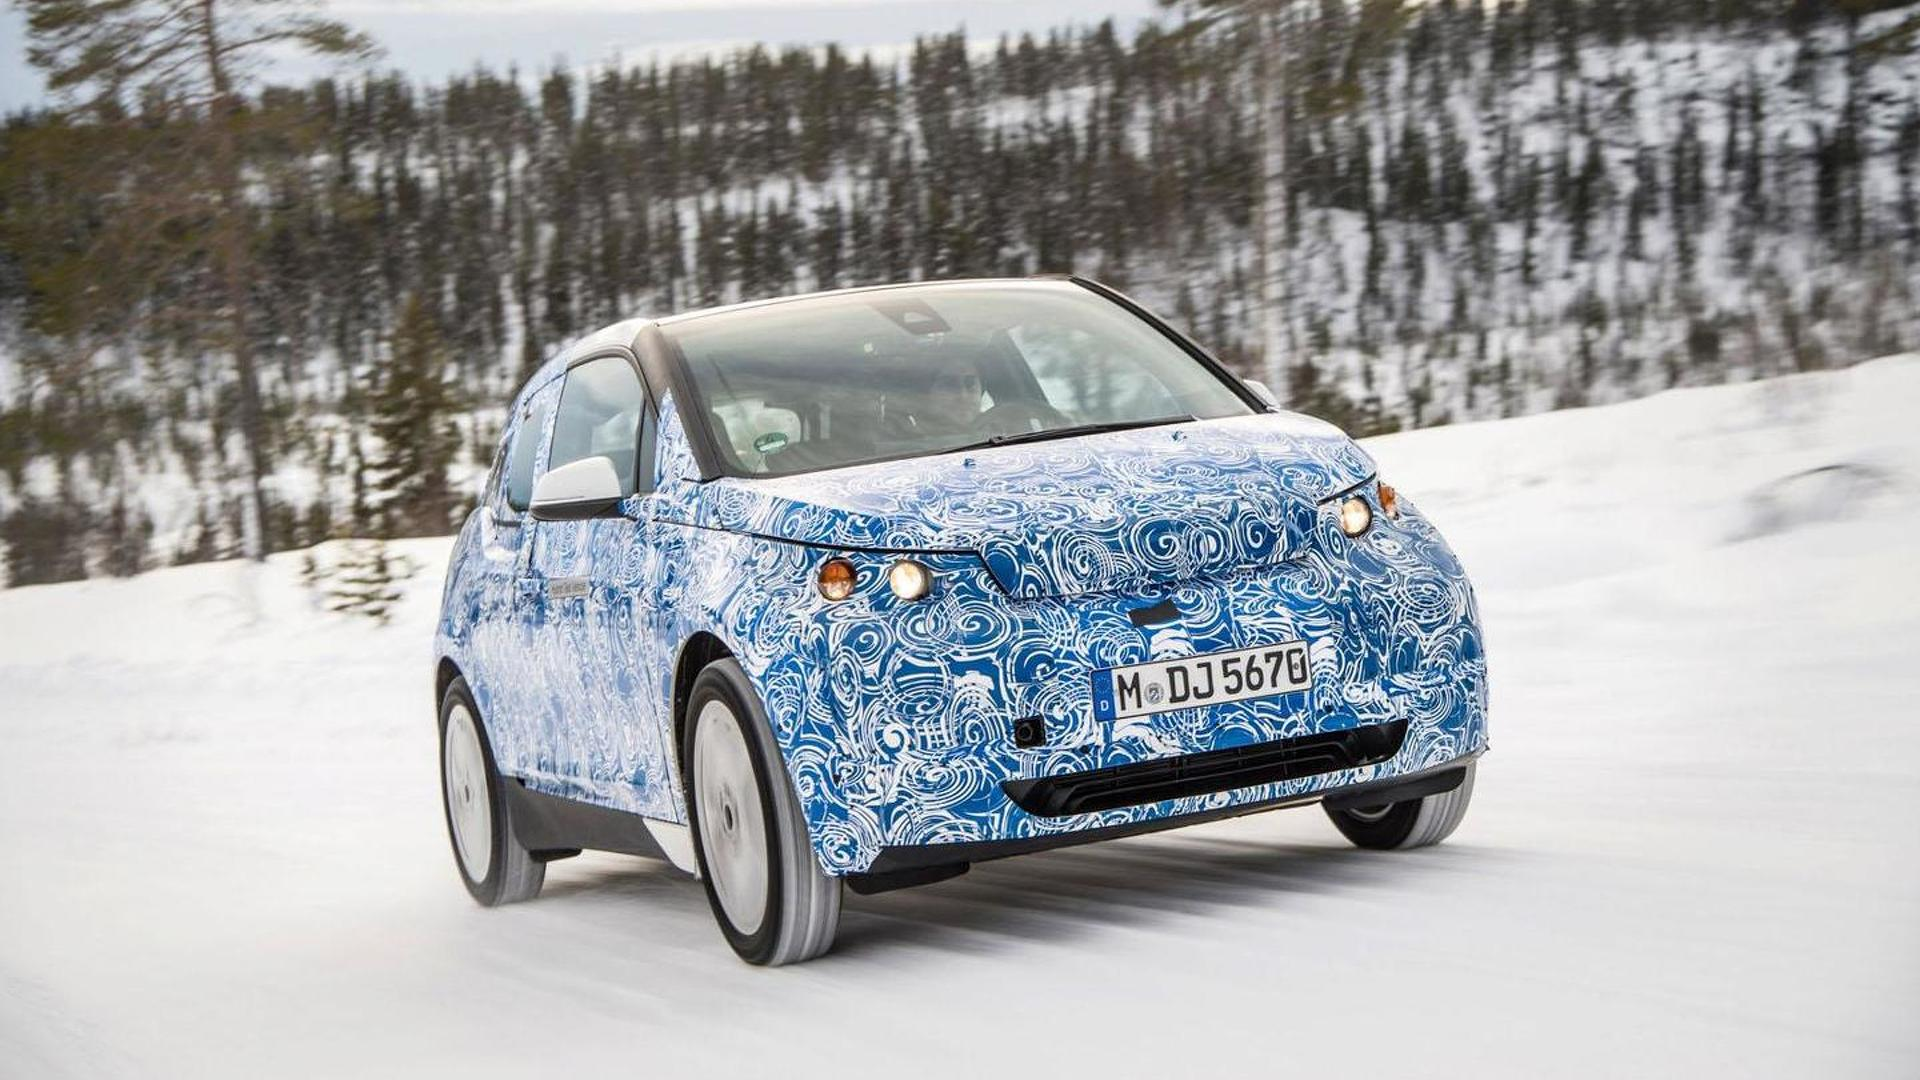 BMW i3 buyers to receive extra perks like home fast-charging system installation